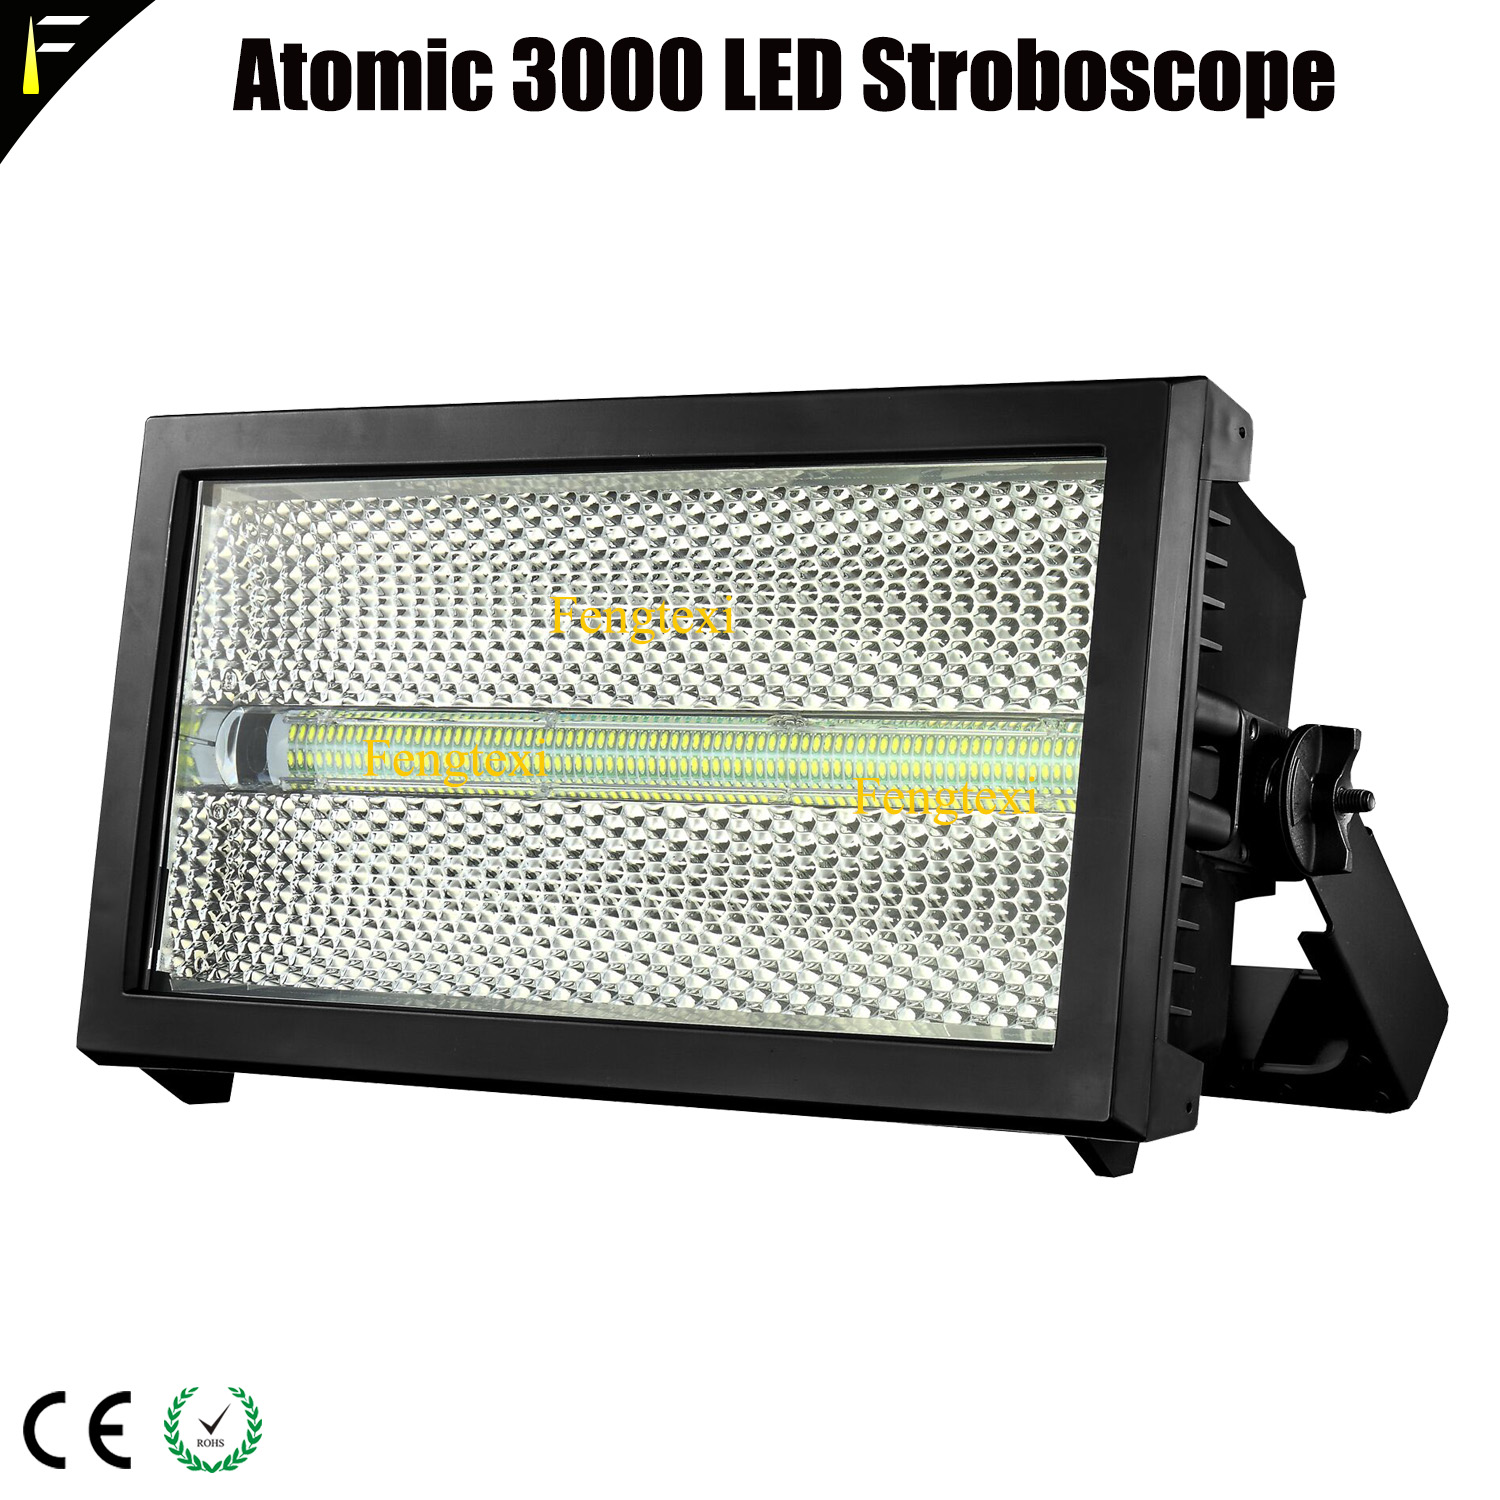 Atomic Aura RGB LED 3000 Blinder Strobe Light